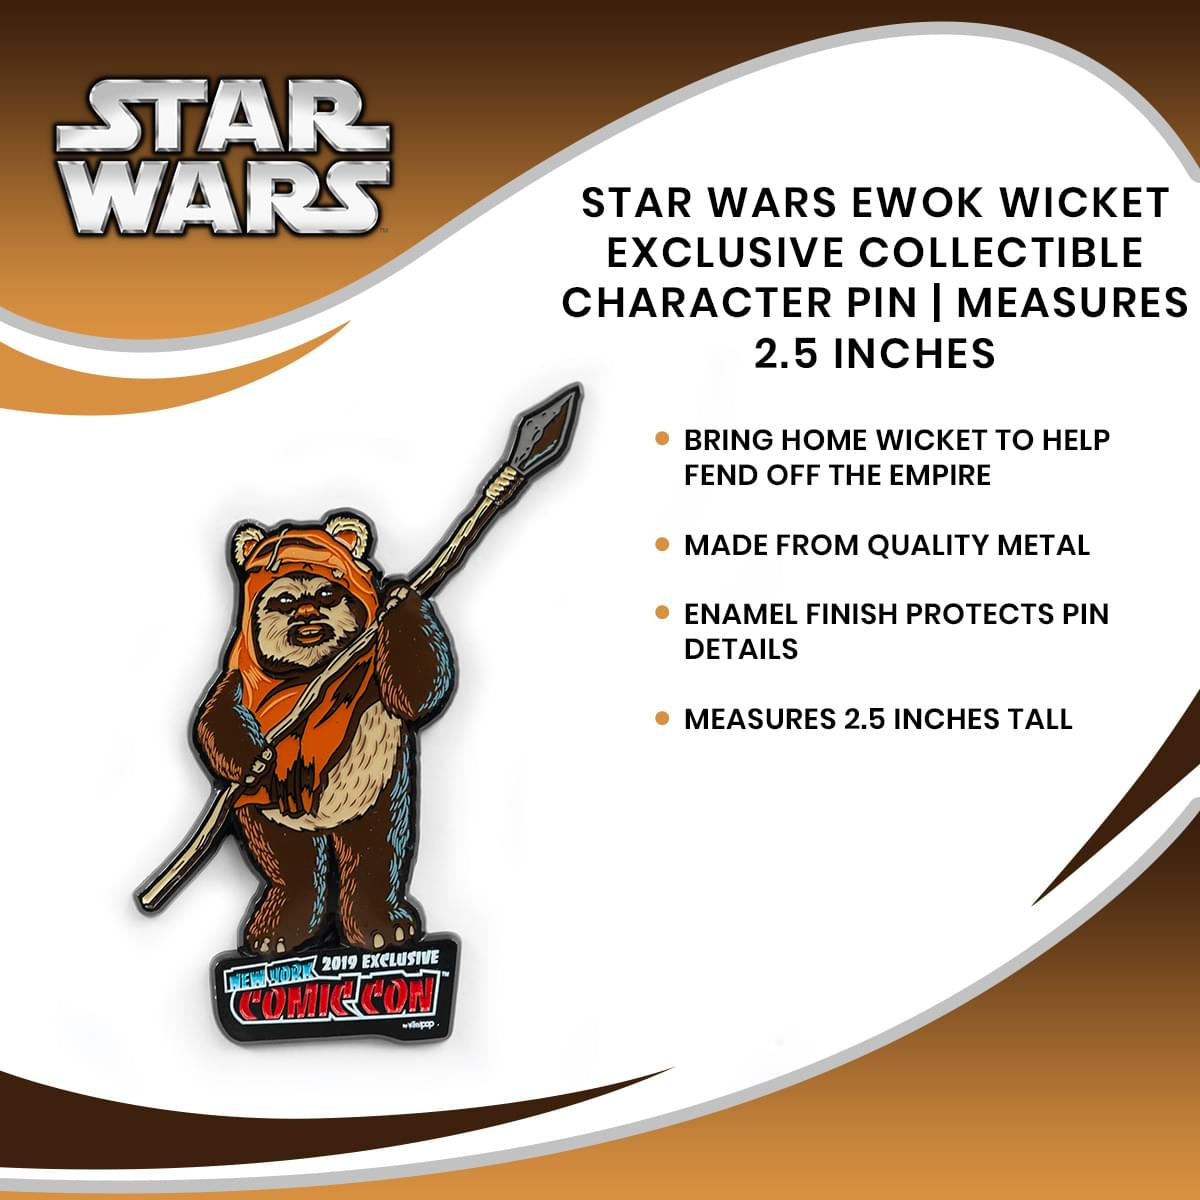 Star Wars Ewok Wicket Exclusive Collectible Character Pin | Measures 2.5 Inches